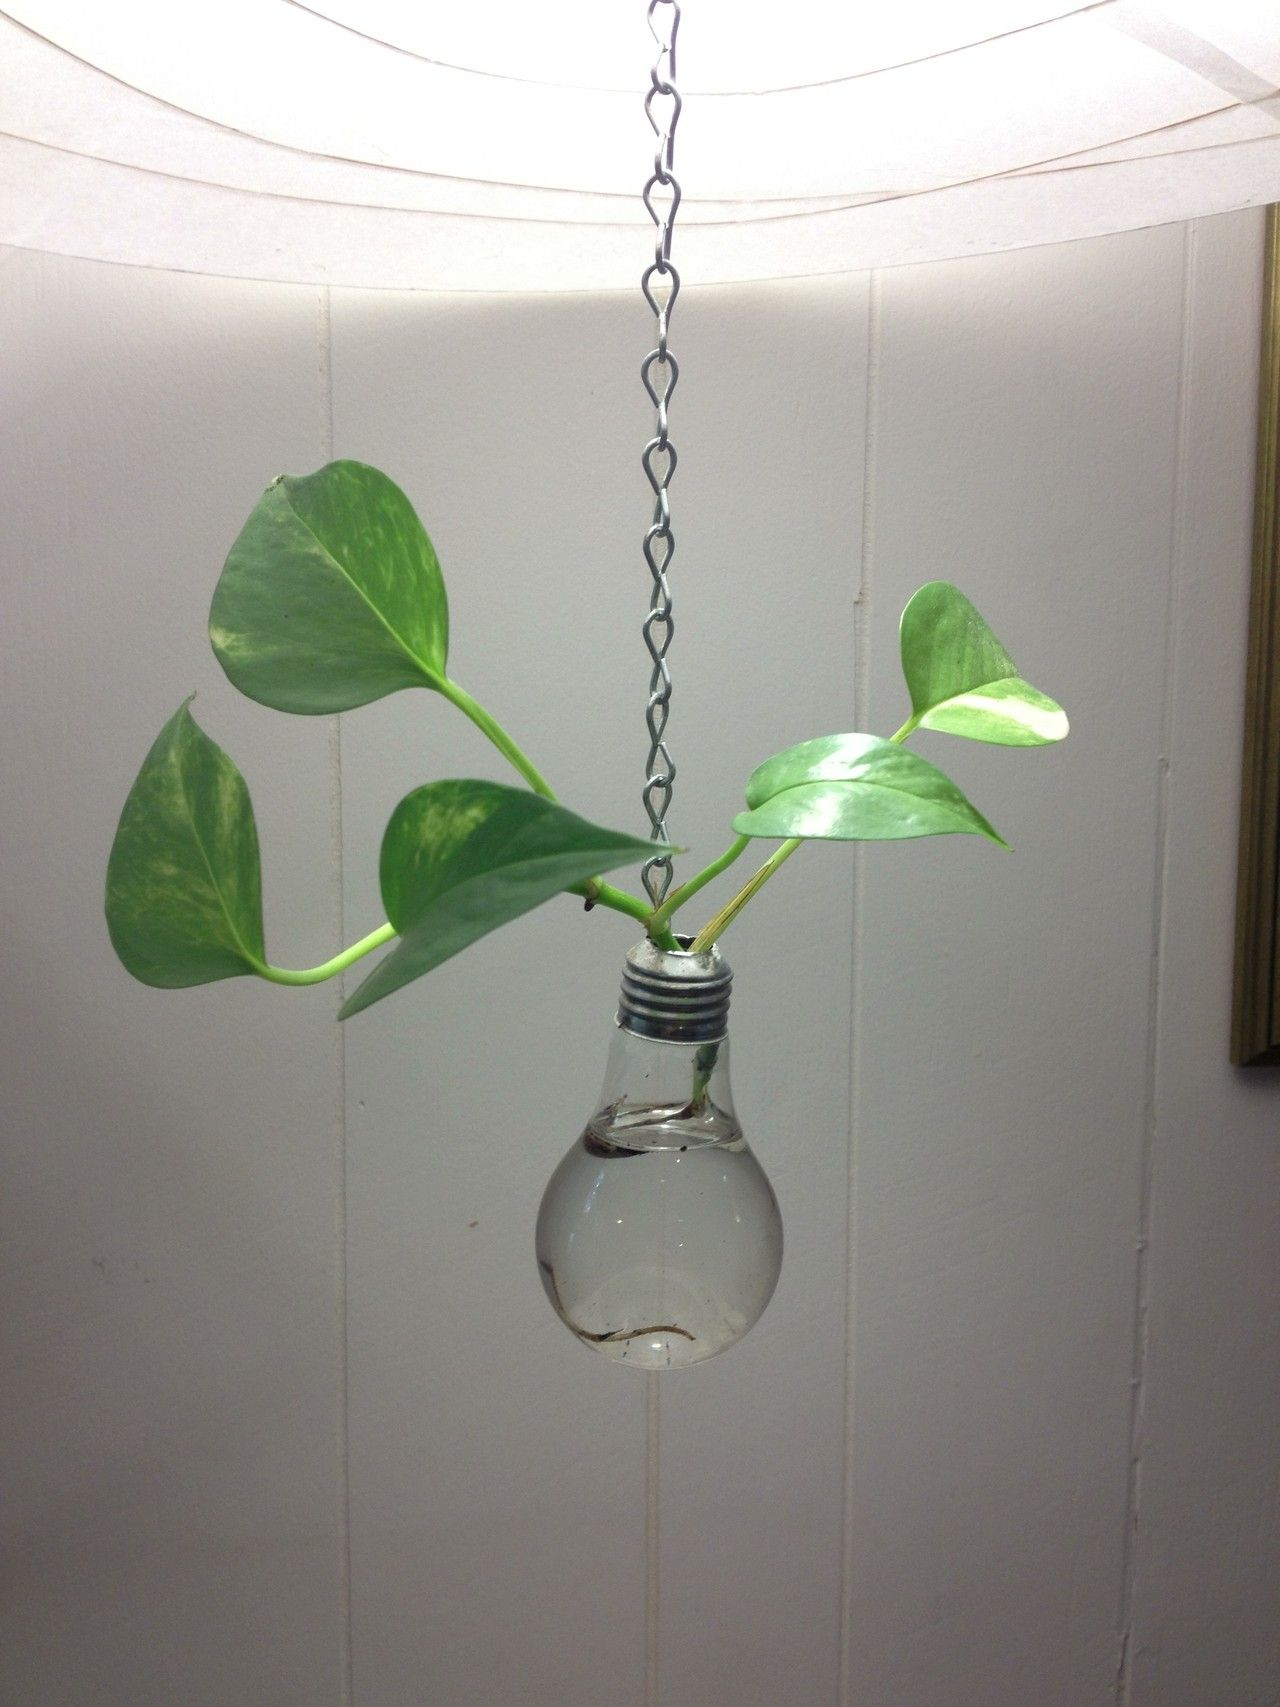 Recycled light bulb hanging vase handmade glass crafts